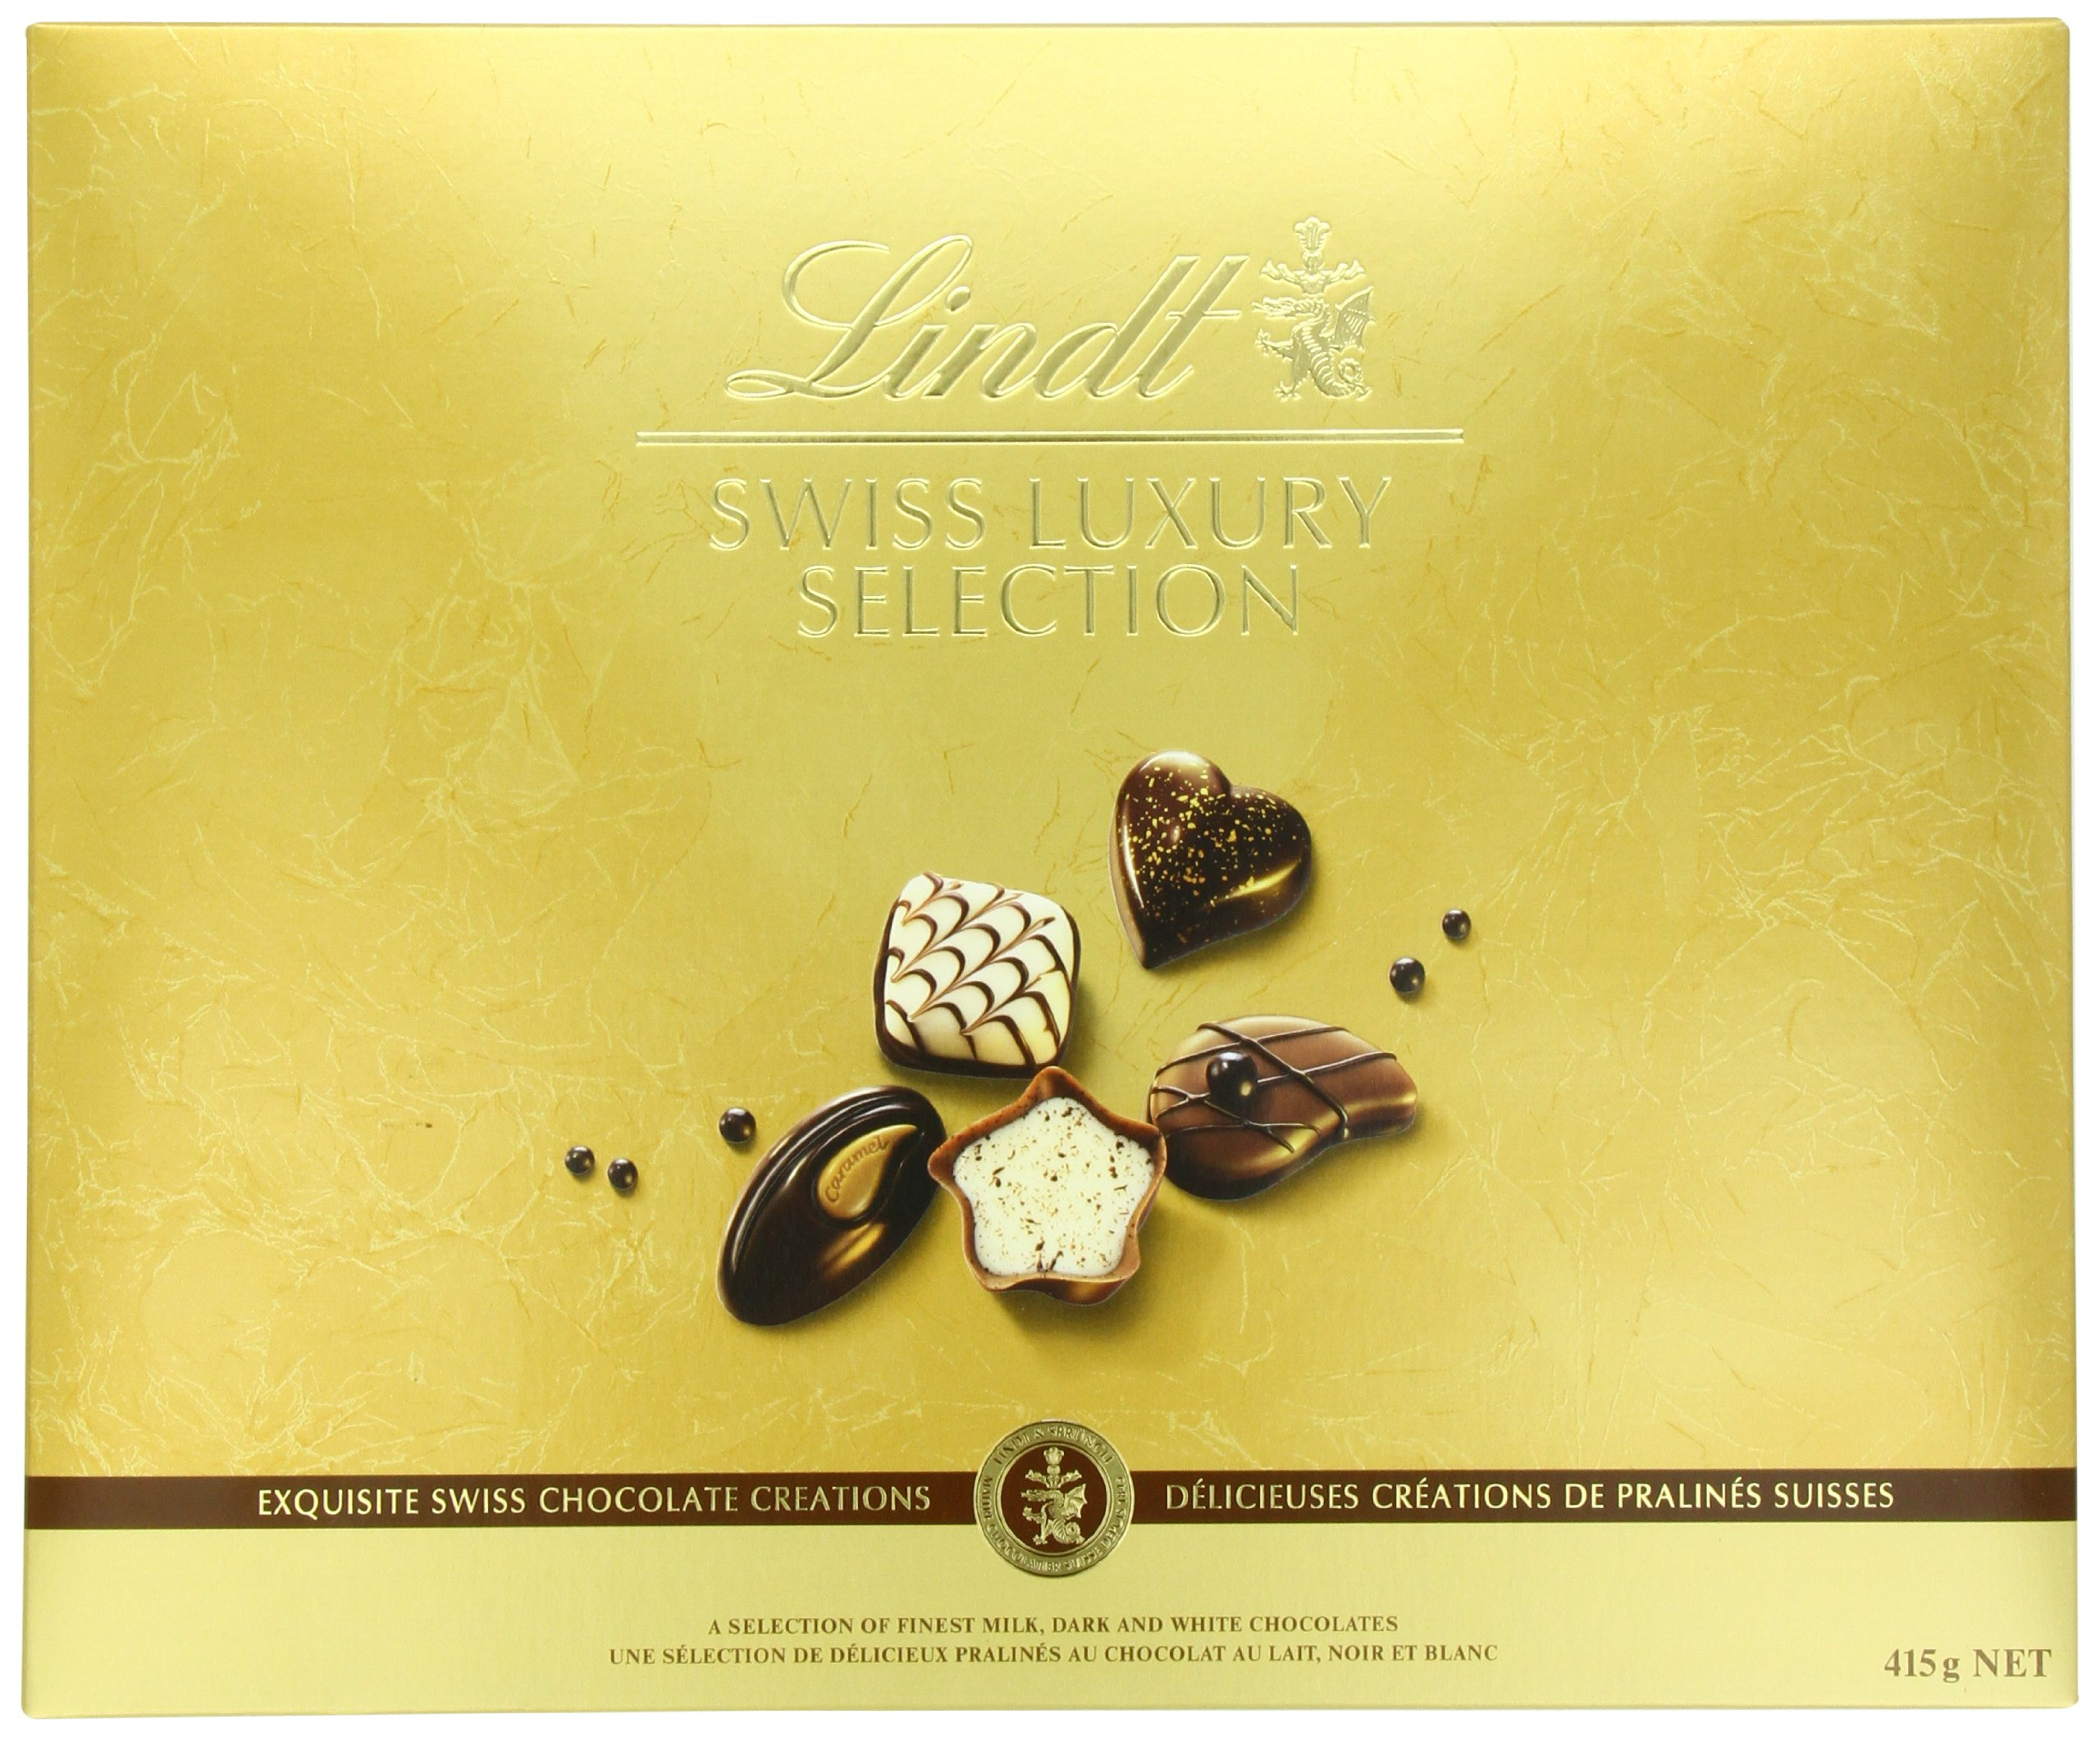 Lindt Swiss Luxury Selection, Assorted Chocolate, 14.6 Ounce Box